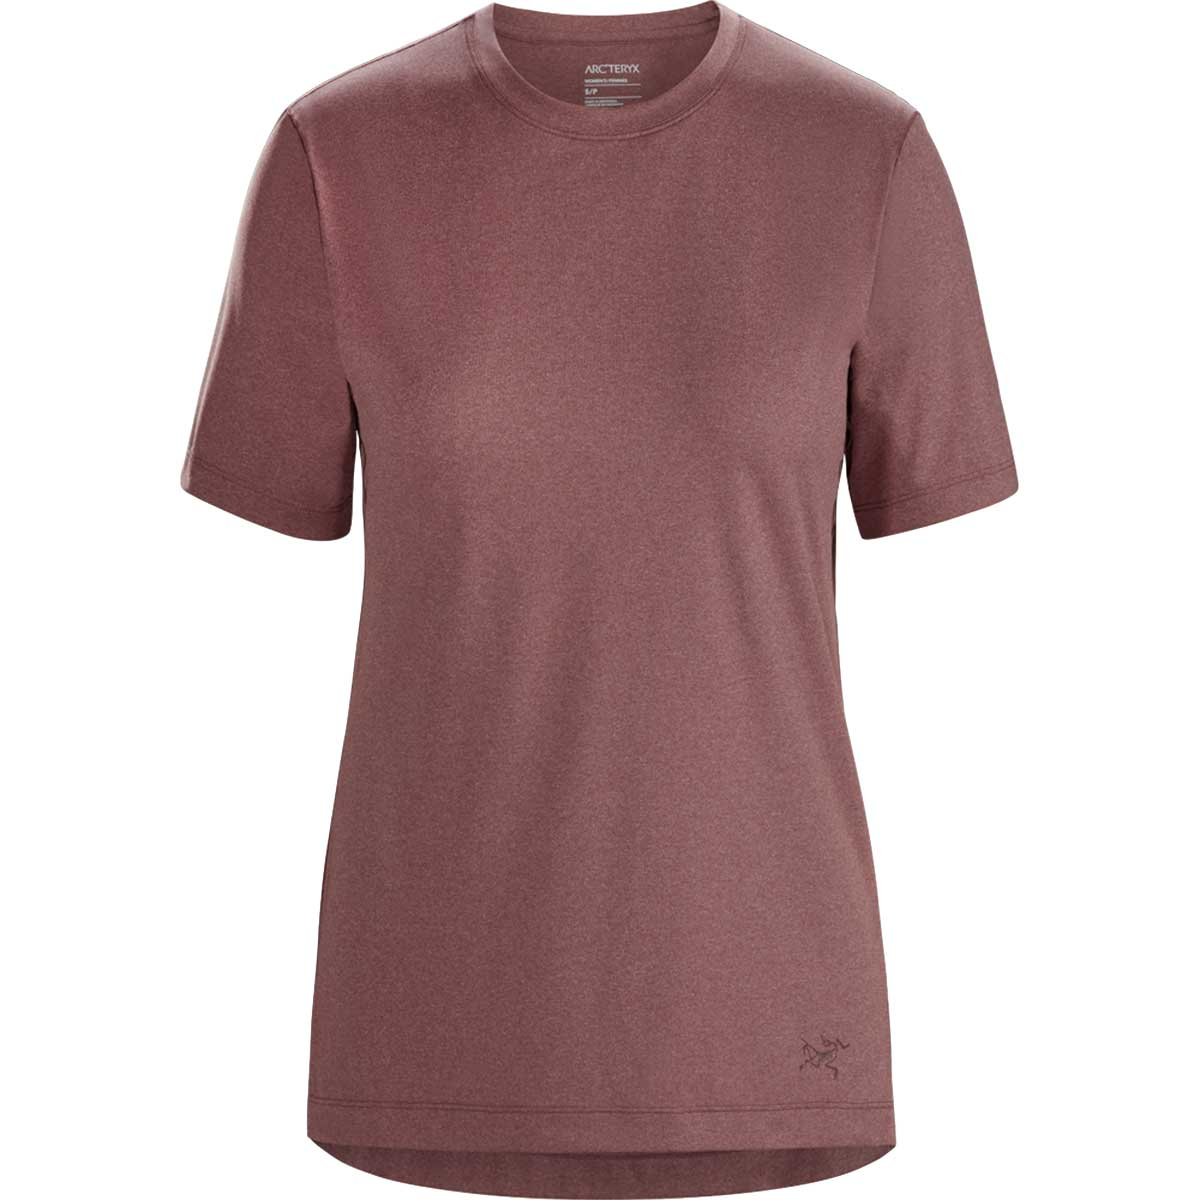 Arcteryx women's Remige Short Sleeve Top in Inertia front view